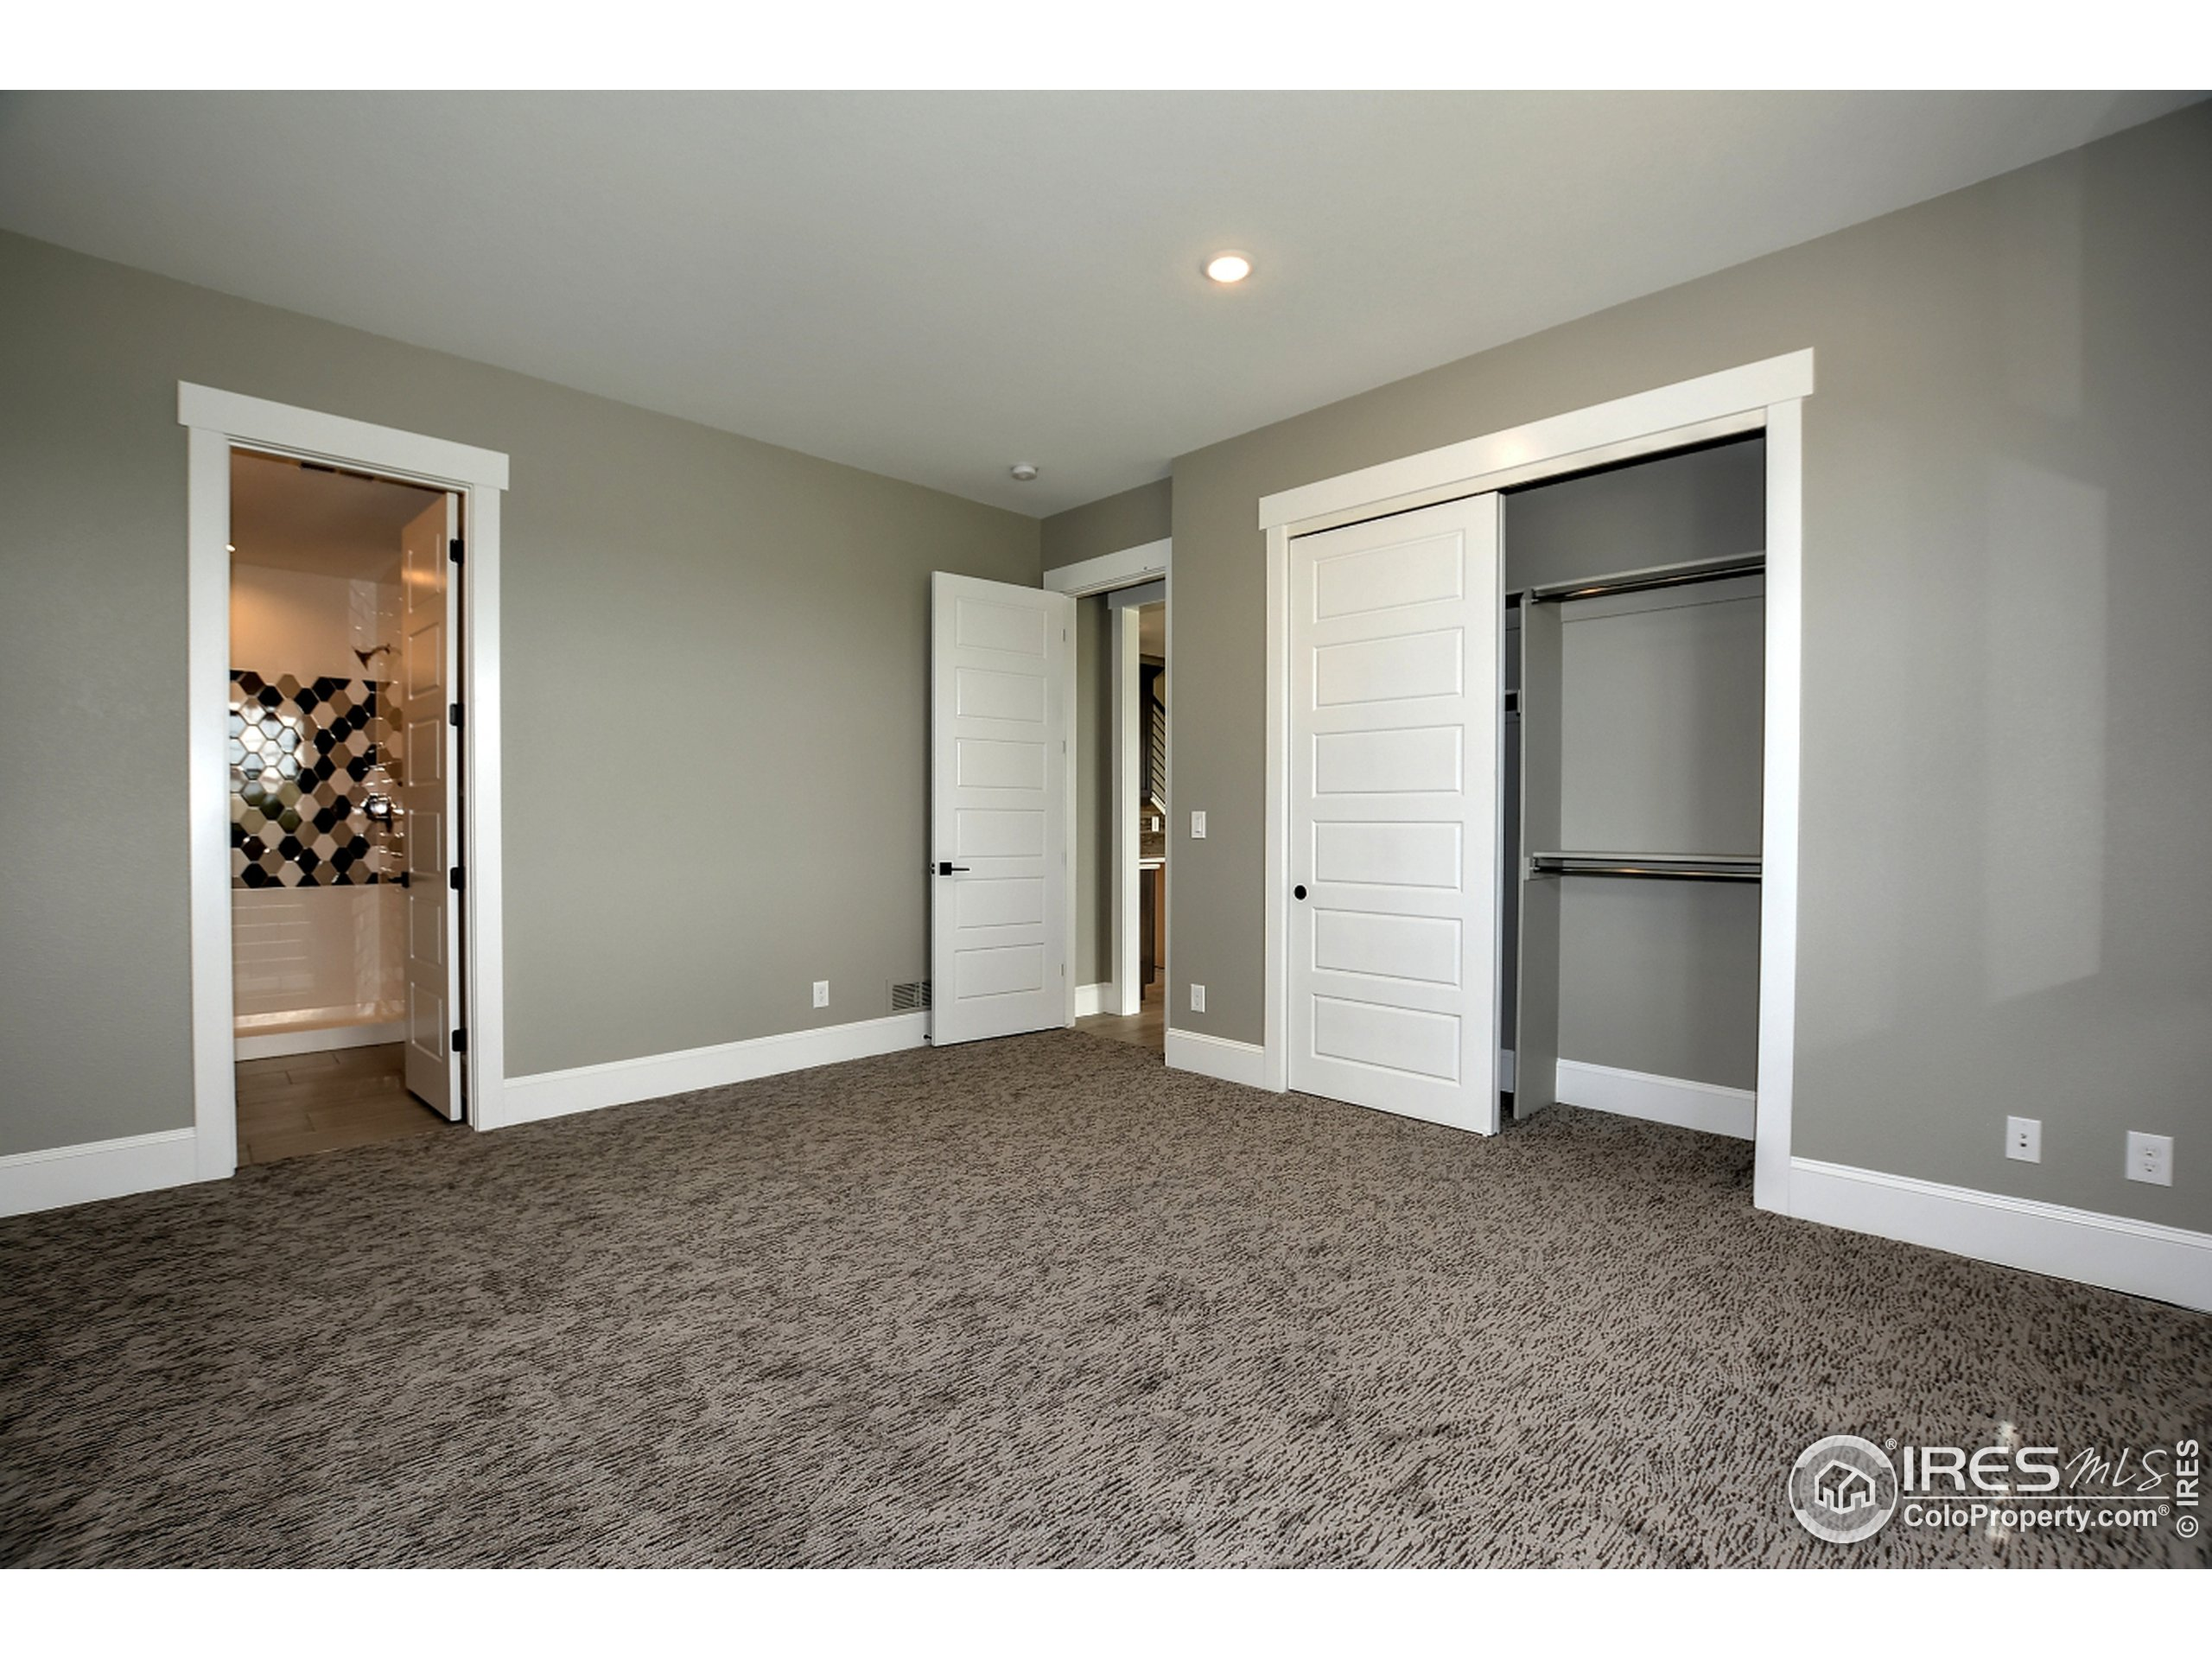 To be Built - Photo of a Past Build - Basement Bedroom 3